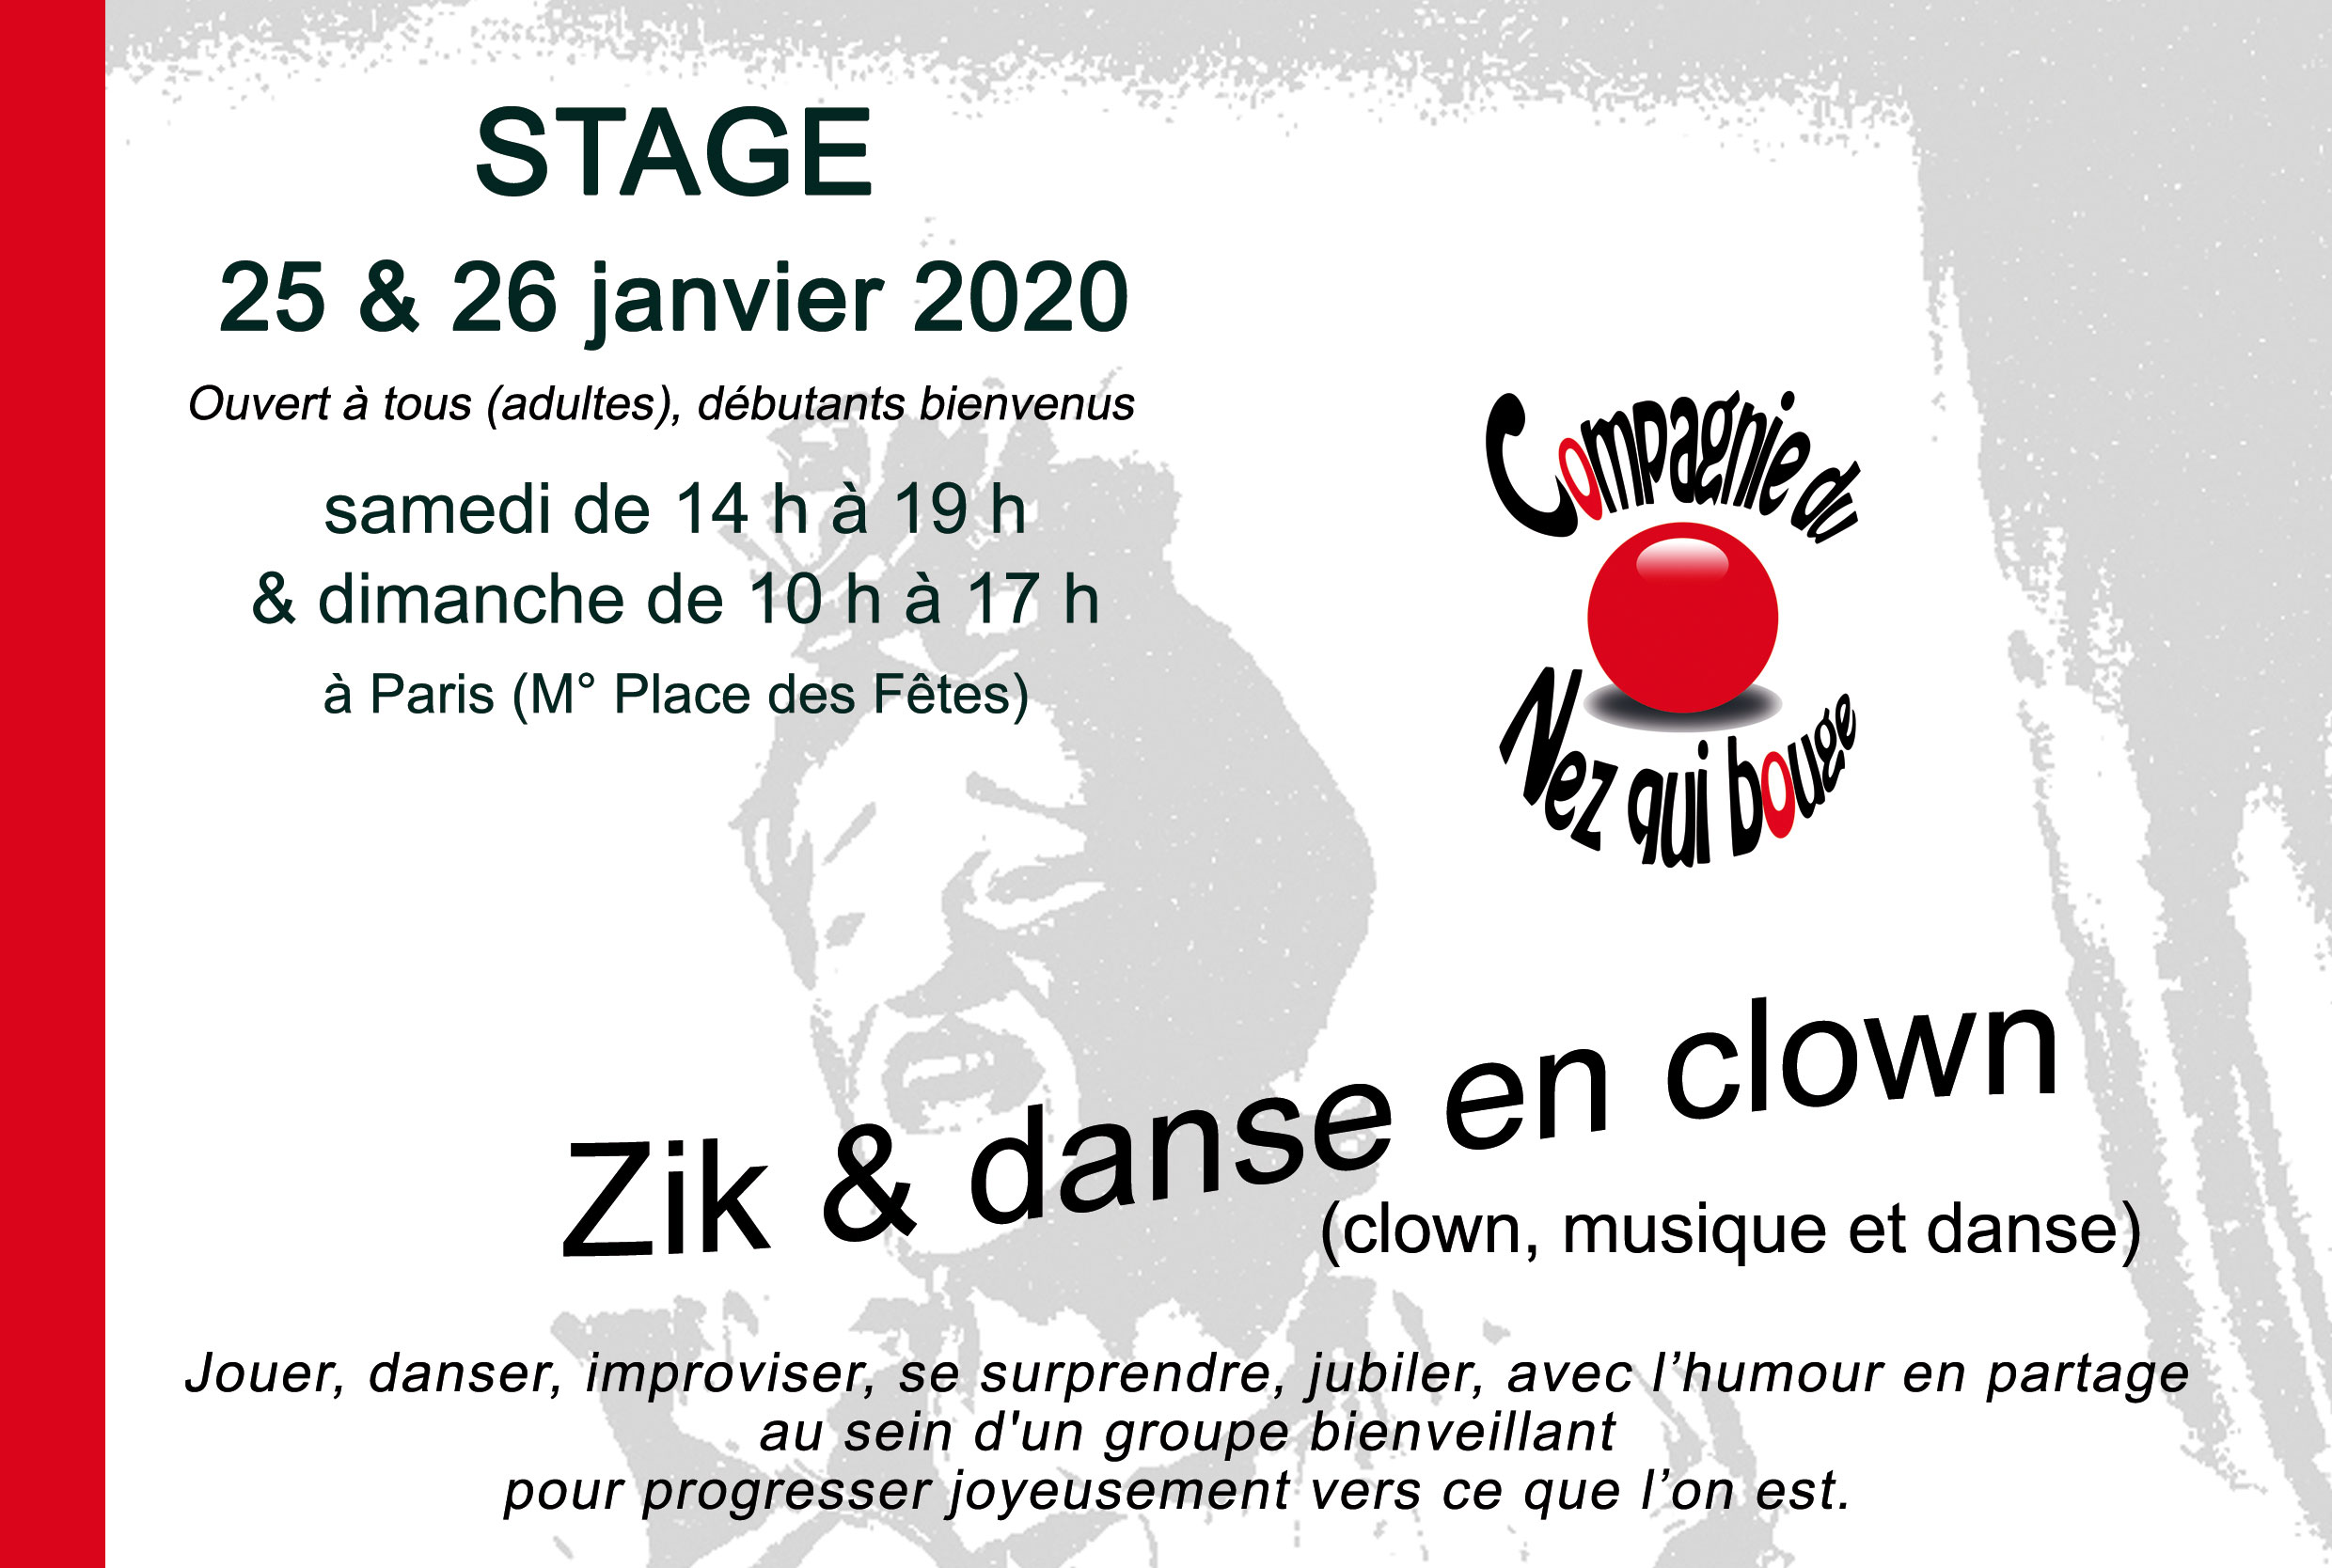 Zik et danse en clown